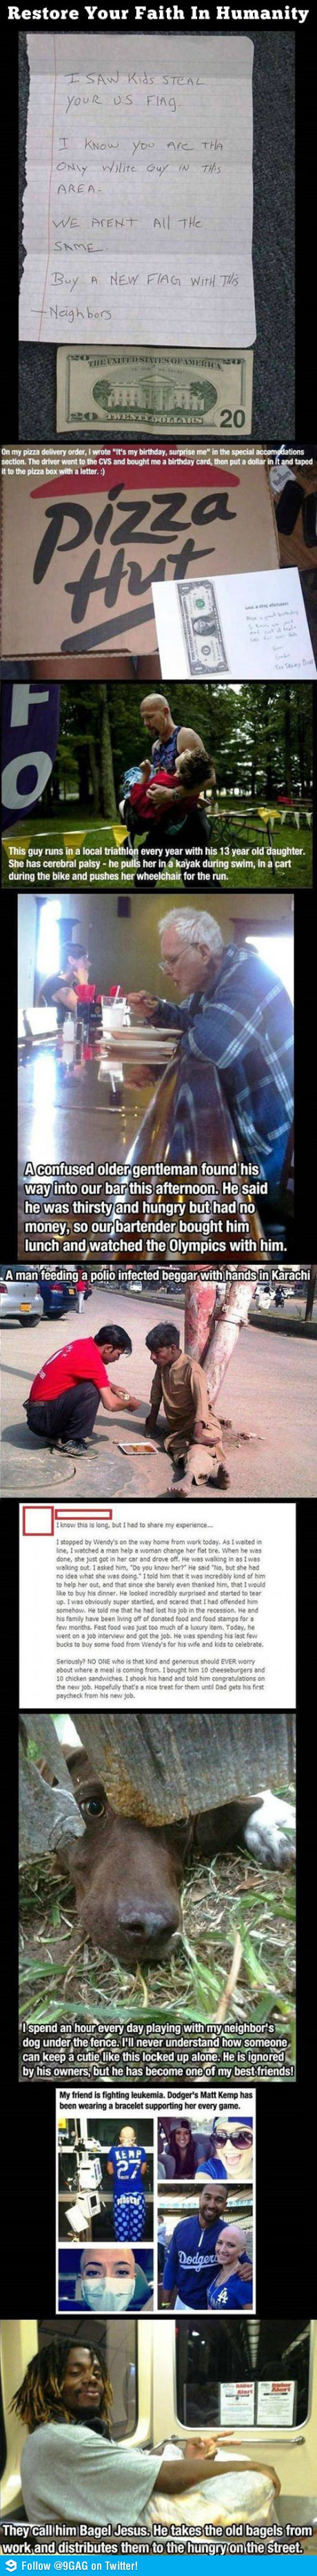 Faith in humanity stories. I love these.